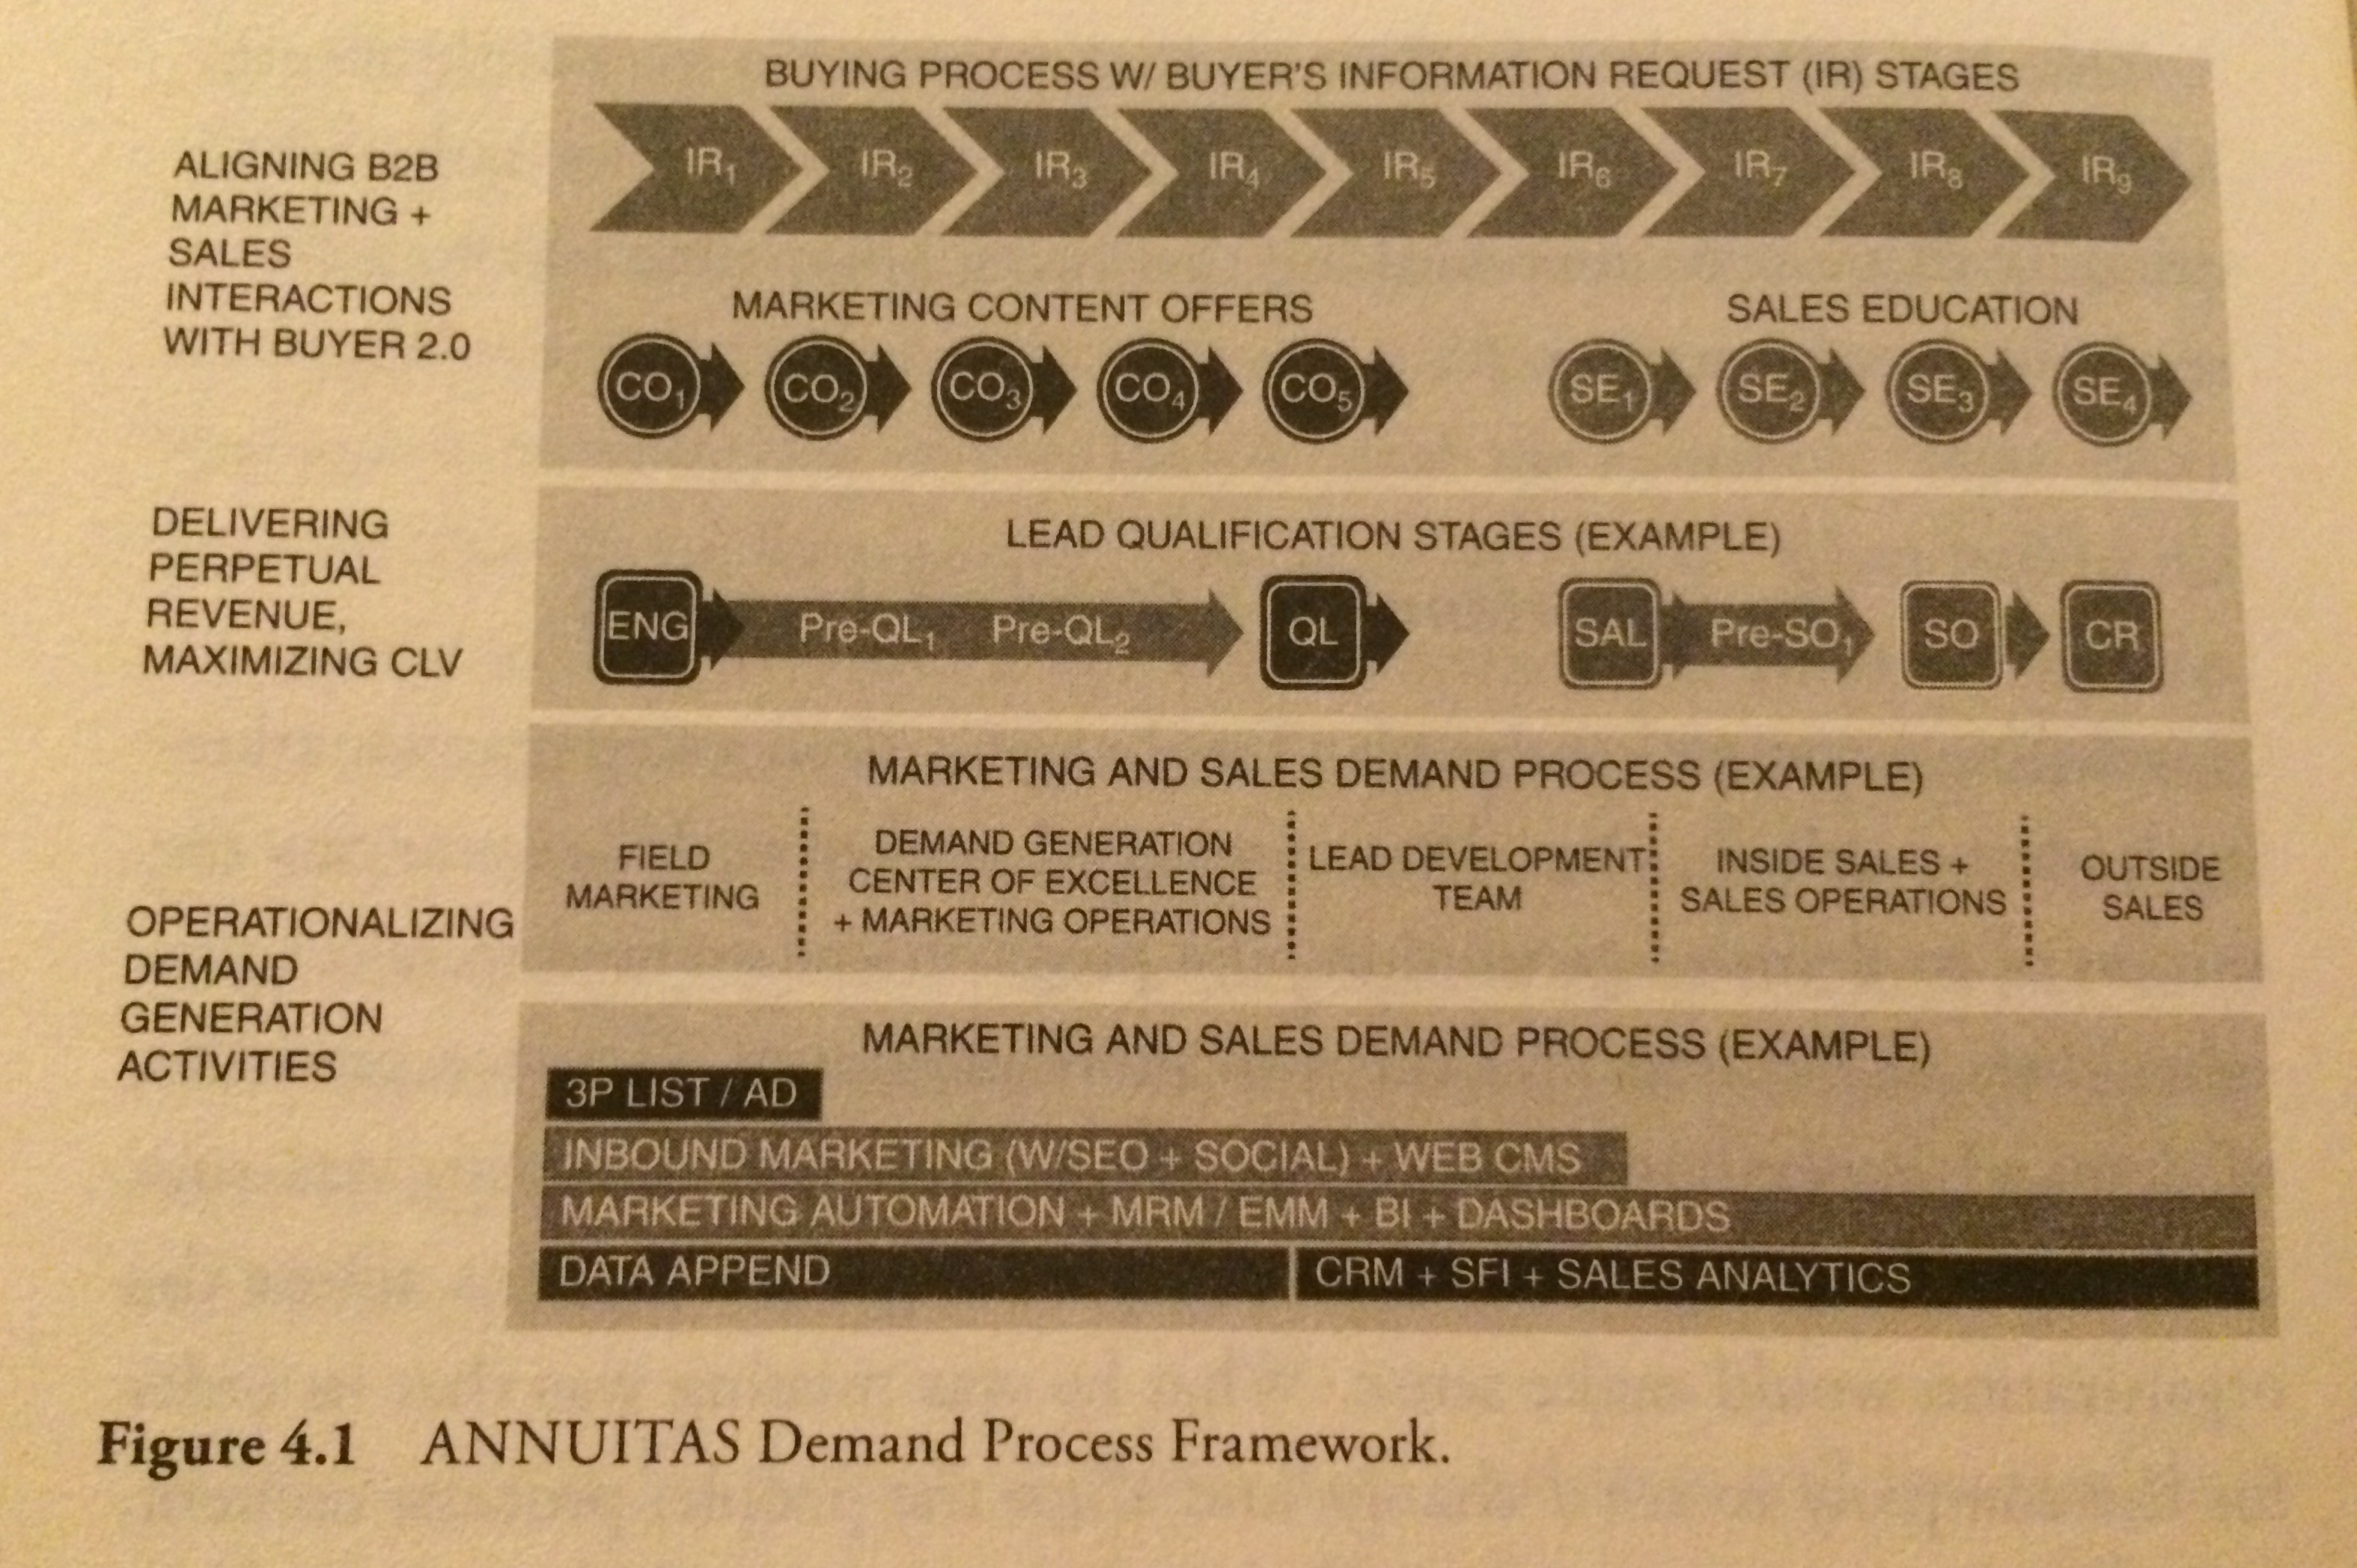 ANNUITAS Demand Process Framework